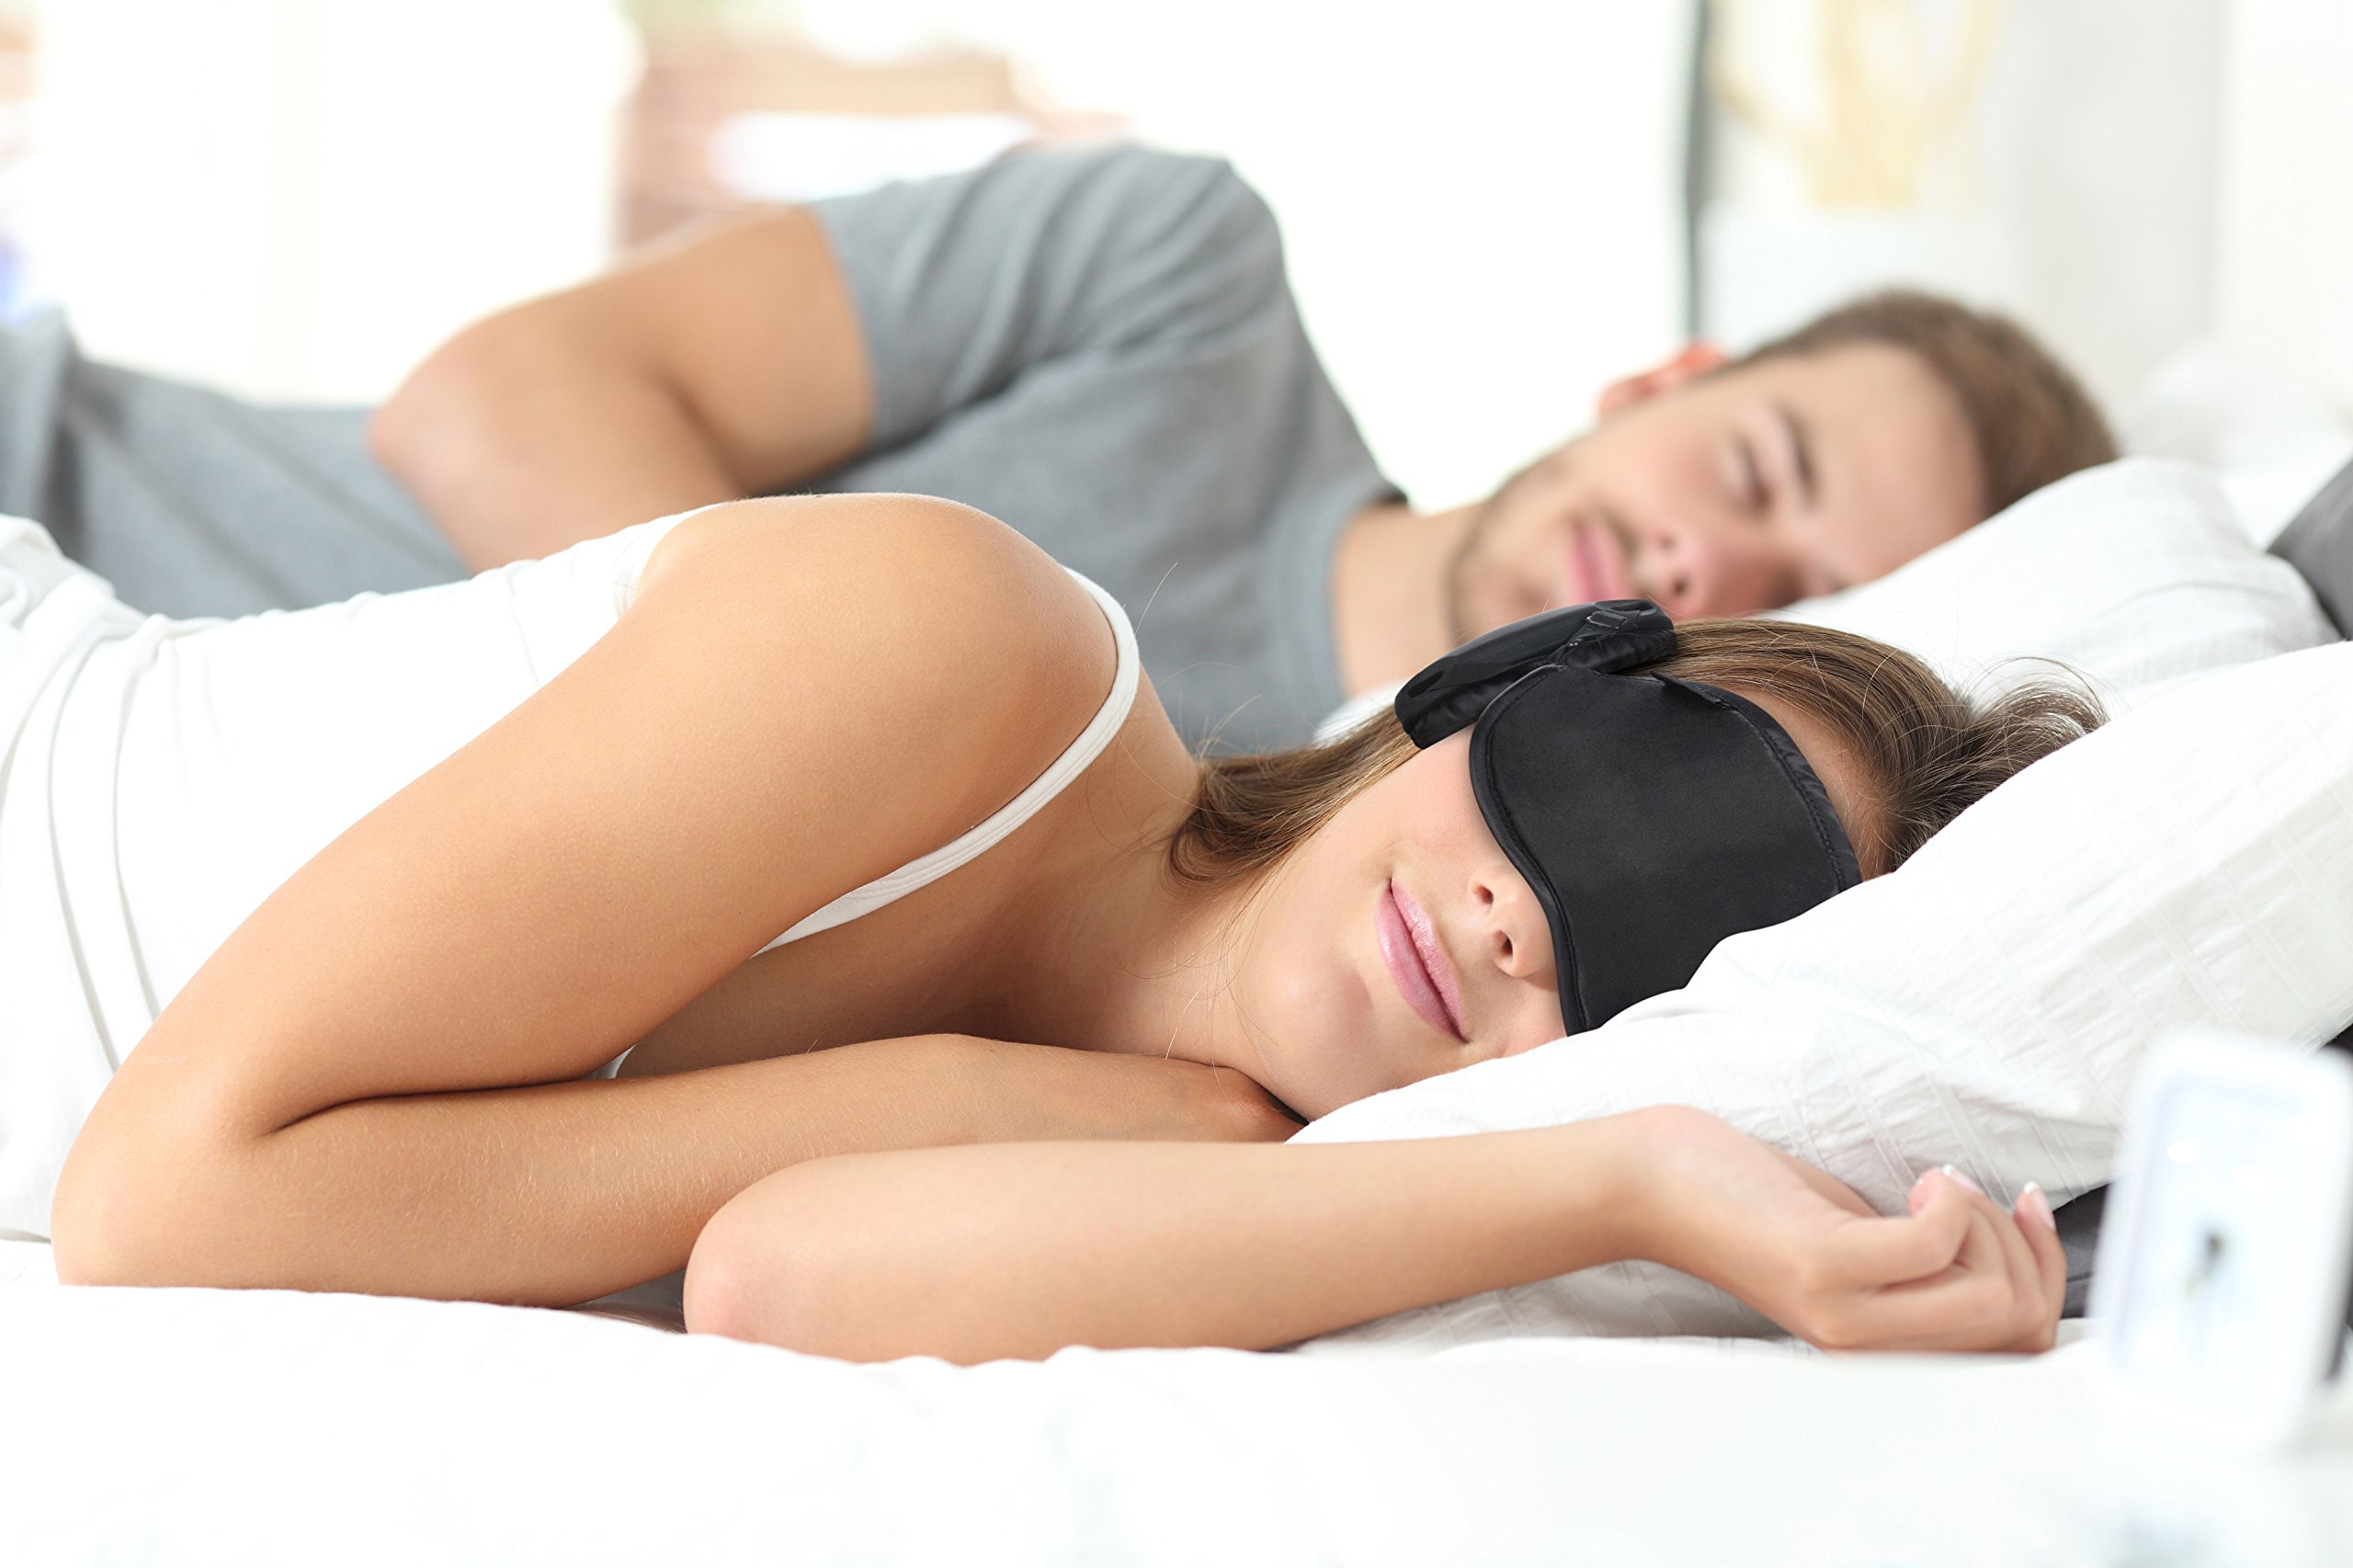 New 2018 Generation 6. Hibermate Sleep Mask with Ear Muffs for Sleeping. Soft & Luxurious Mask, Satin Exterior, Removable Ear Cups Reduce Noise by Approx 15-20db Nrr. (Gen 6 Dark Navy)